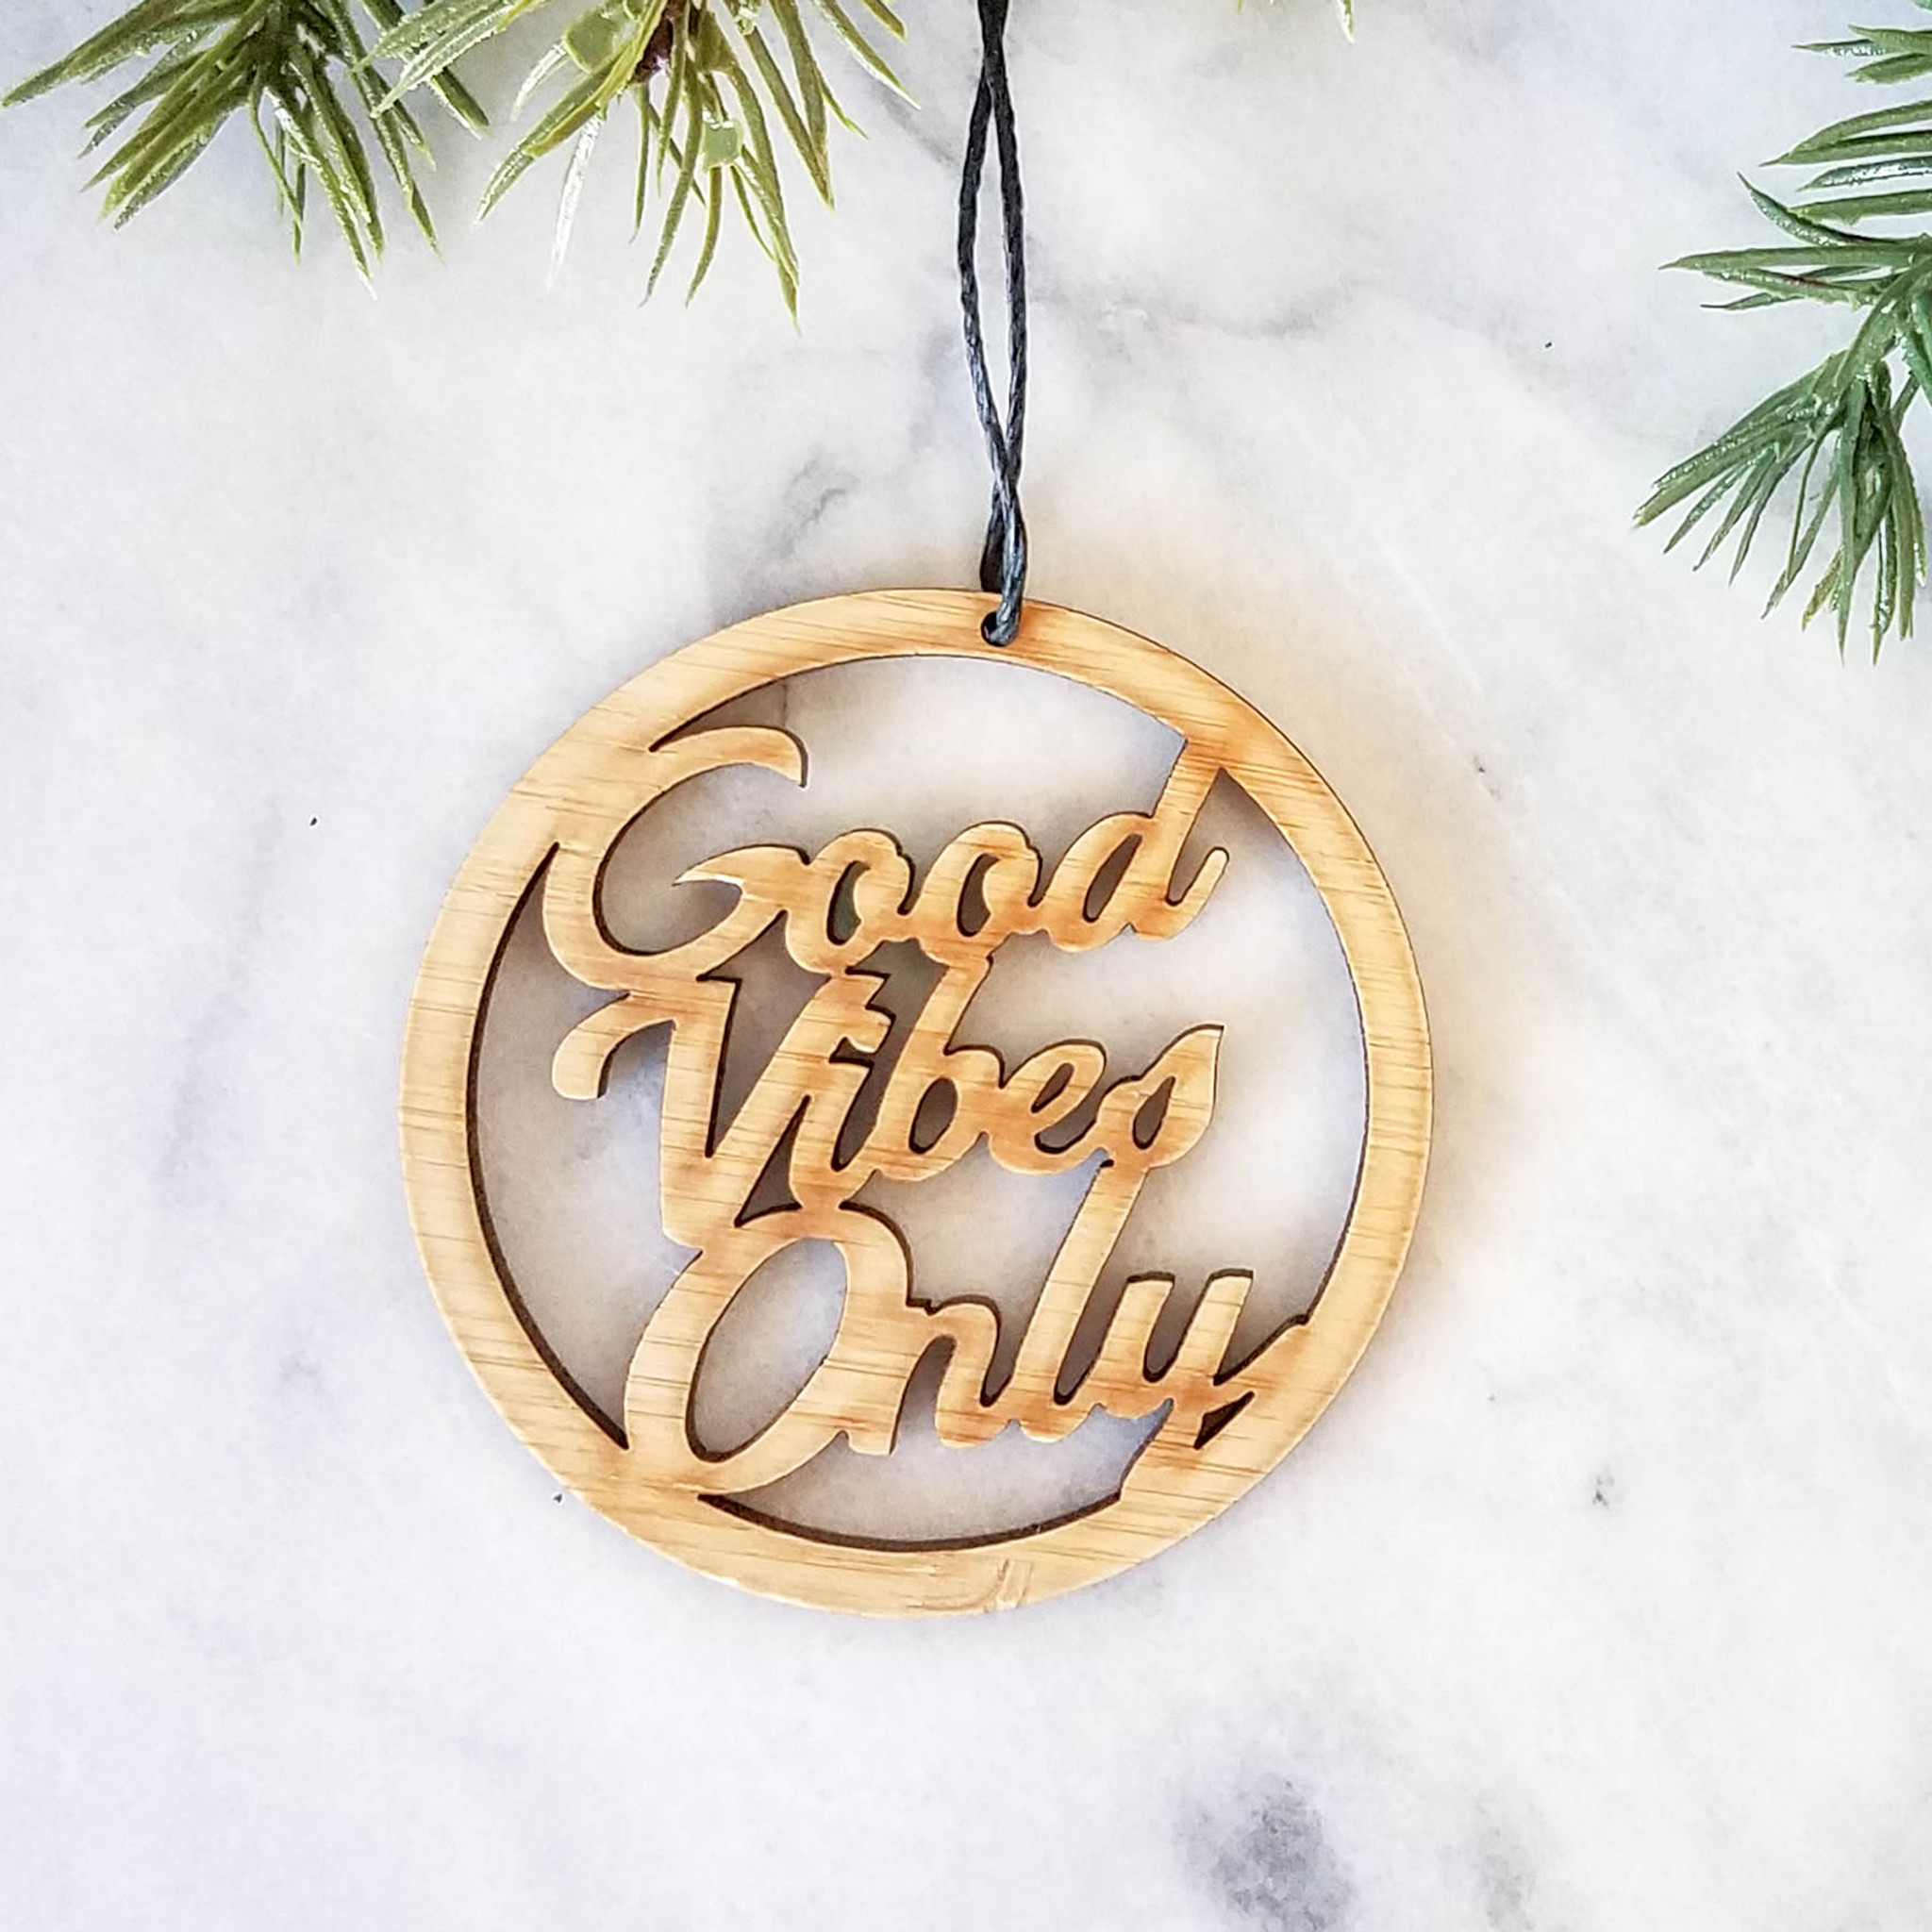 Good vibes only handmade ornament